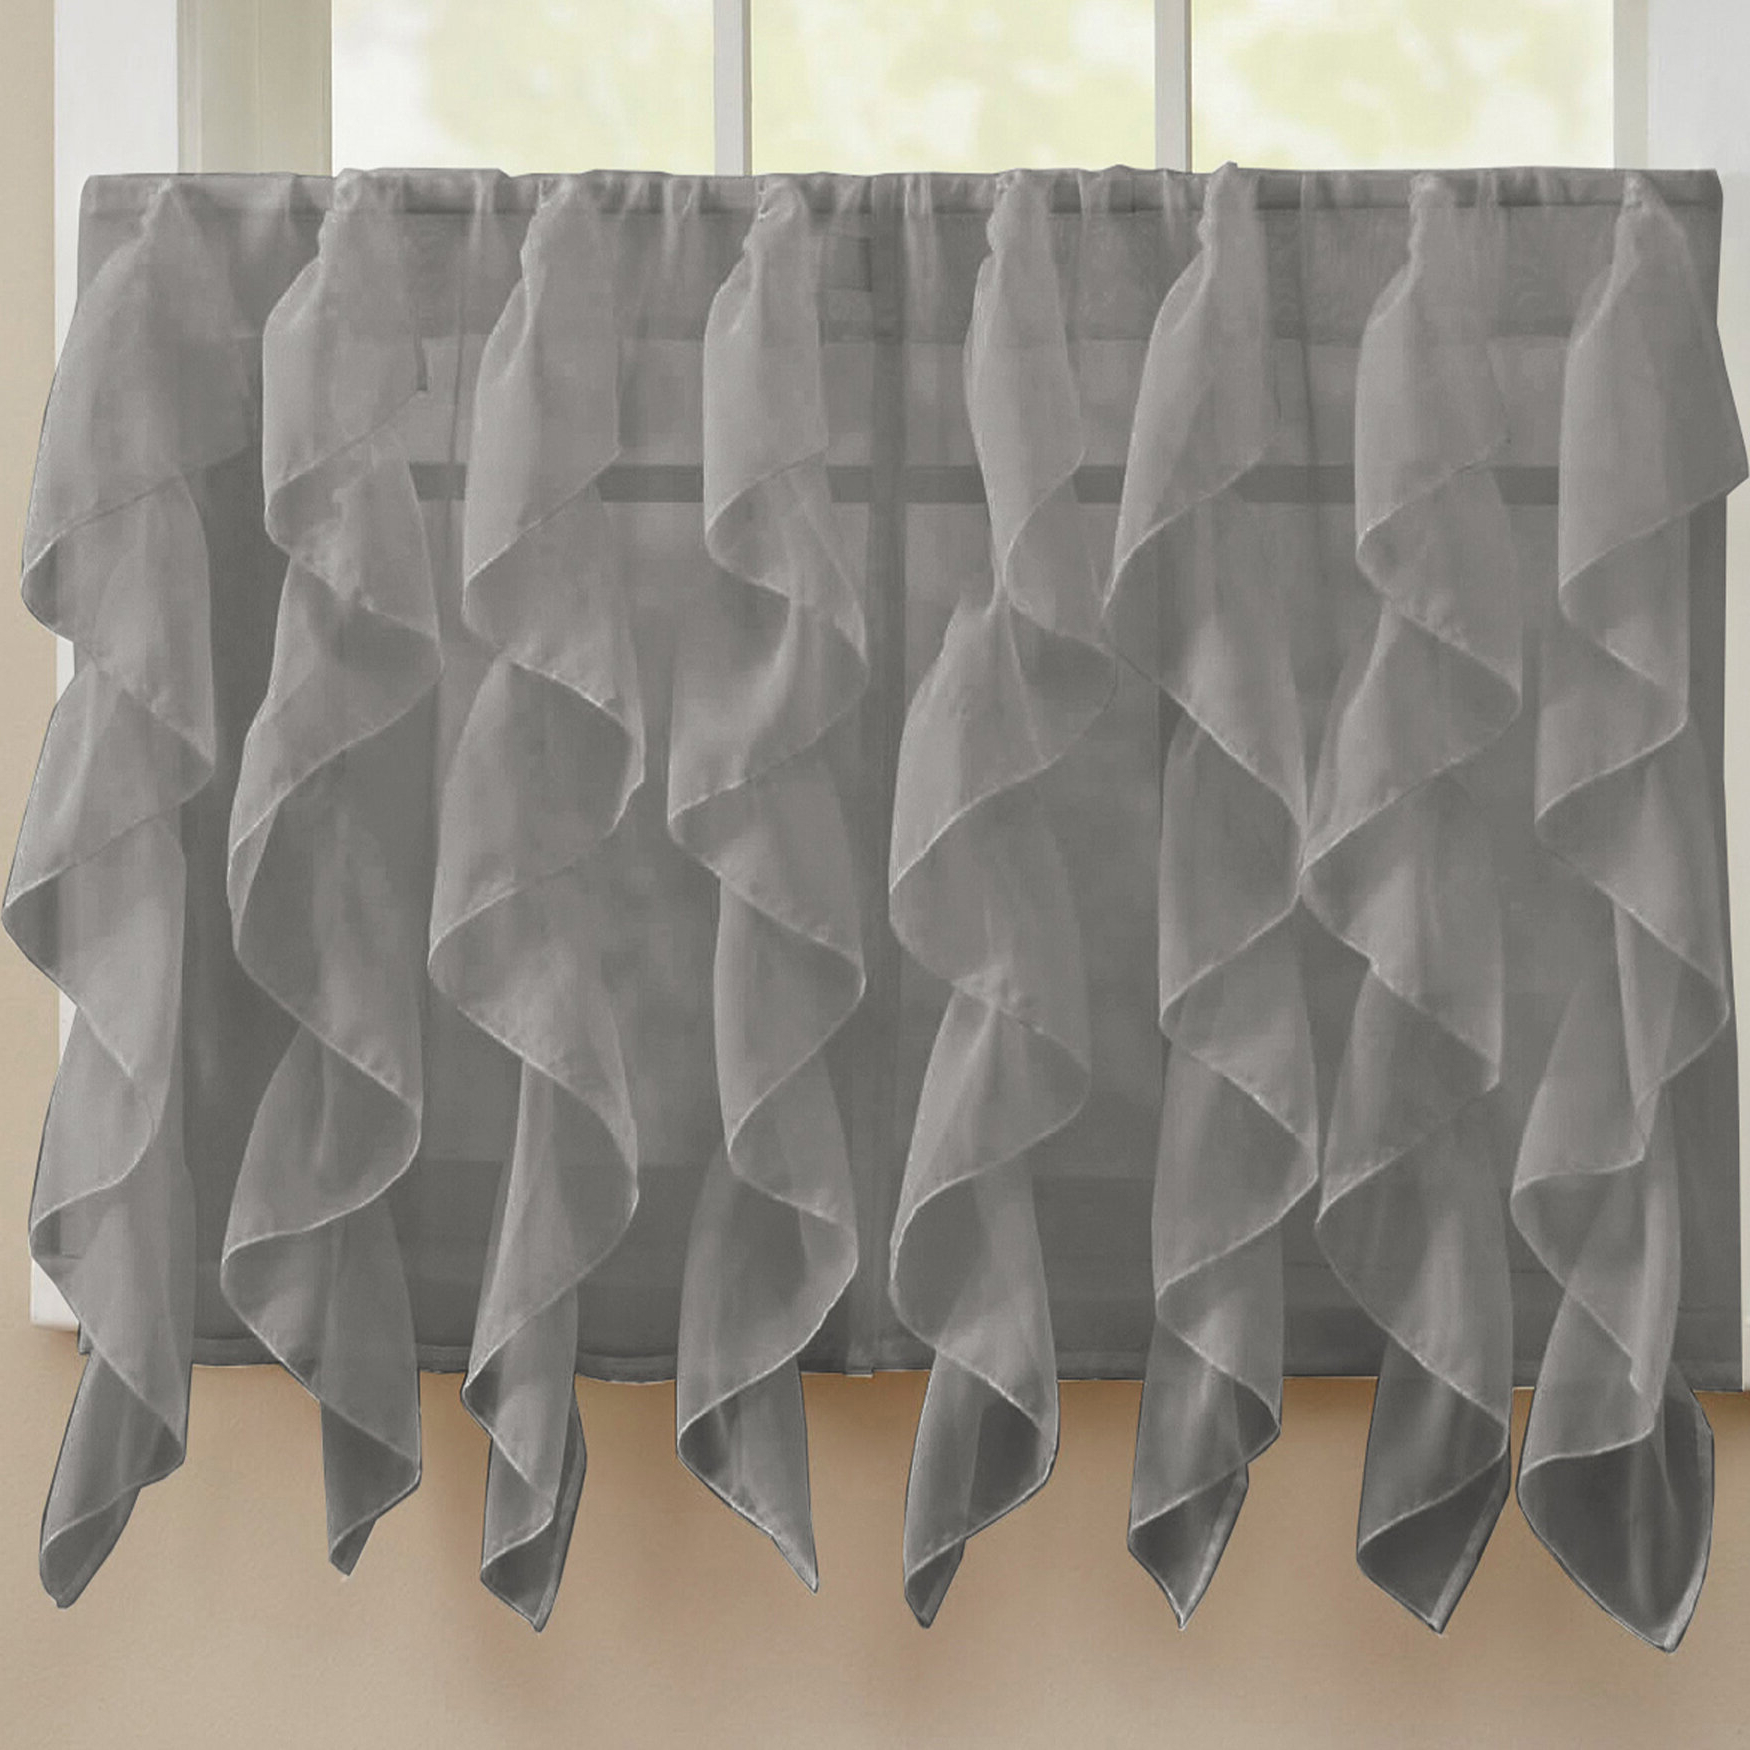 Chic Sheer Voile Vertical Ruffled Window Curtain Tiers Pertaining To Latest Fulgham Chic Sheer Voile Vertical Cafe Curtain (View 16 of 20)